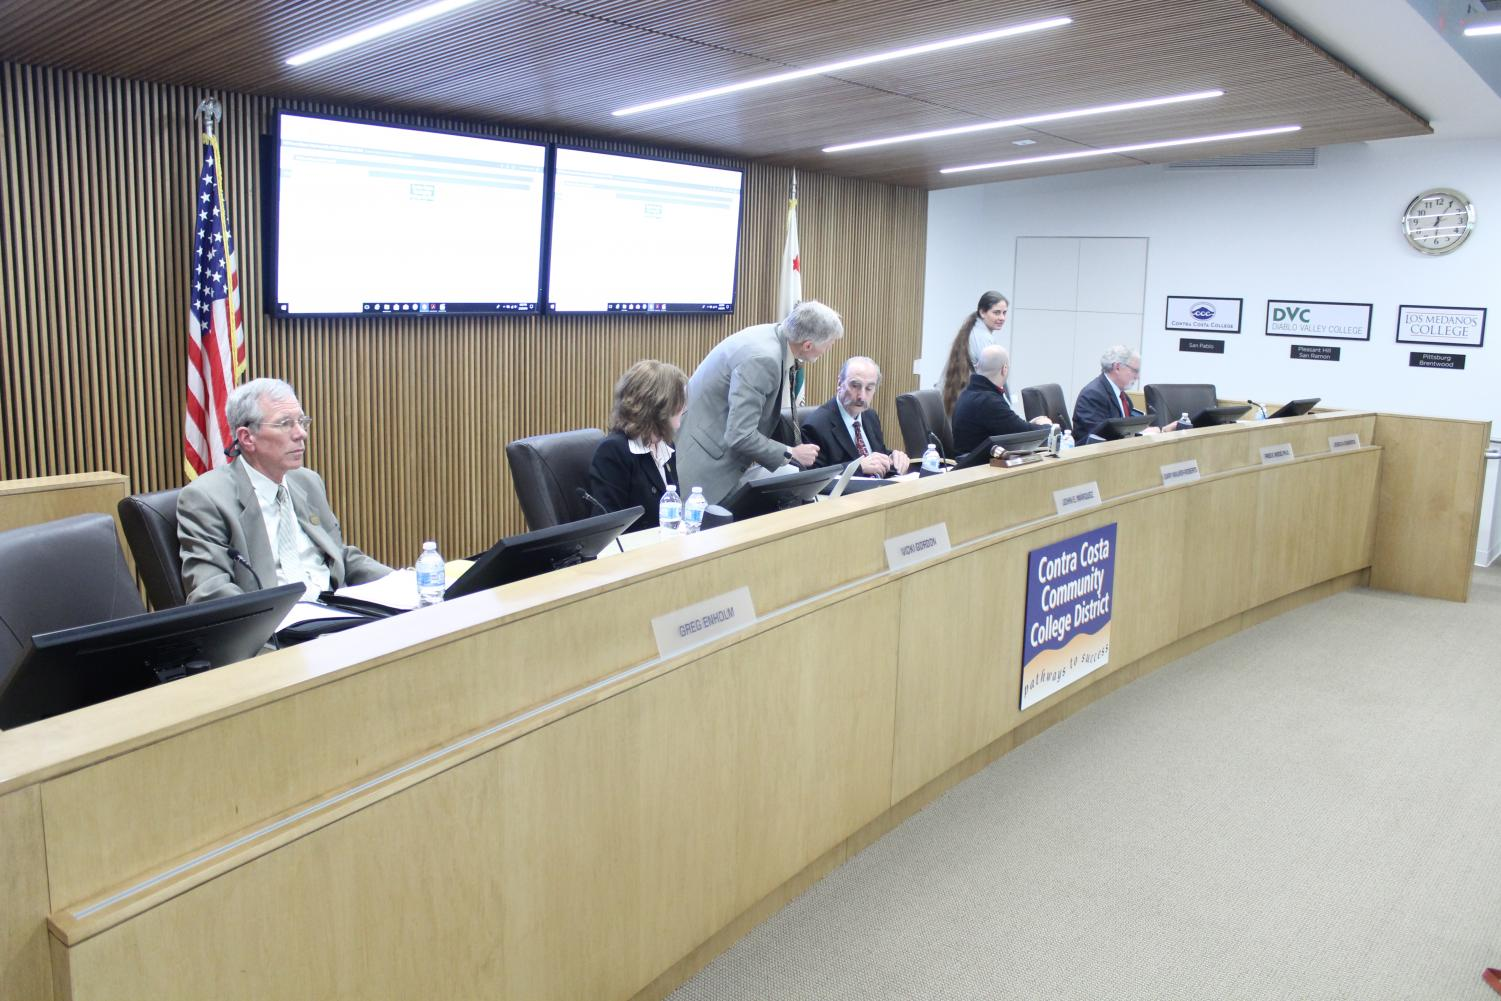 The first 4cd governing board meeting without board president Tim Farley, took place at the 4CD office in Martinez. Feb. 28, 2018.